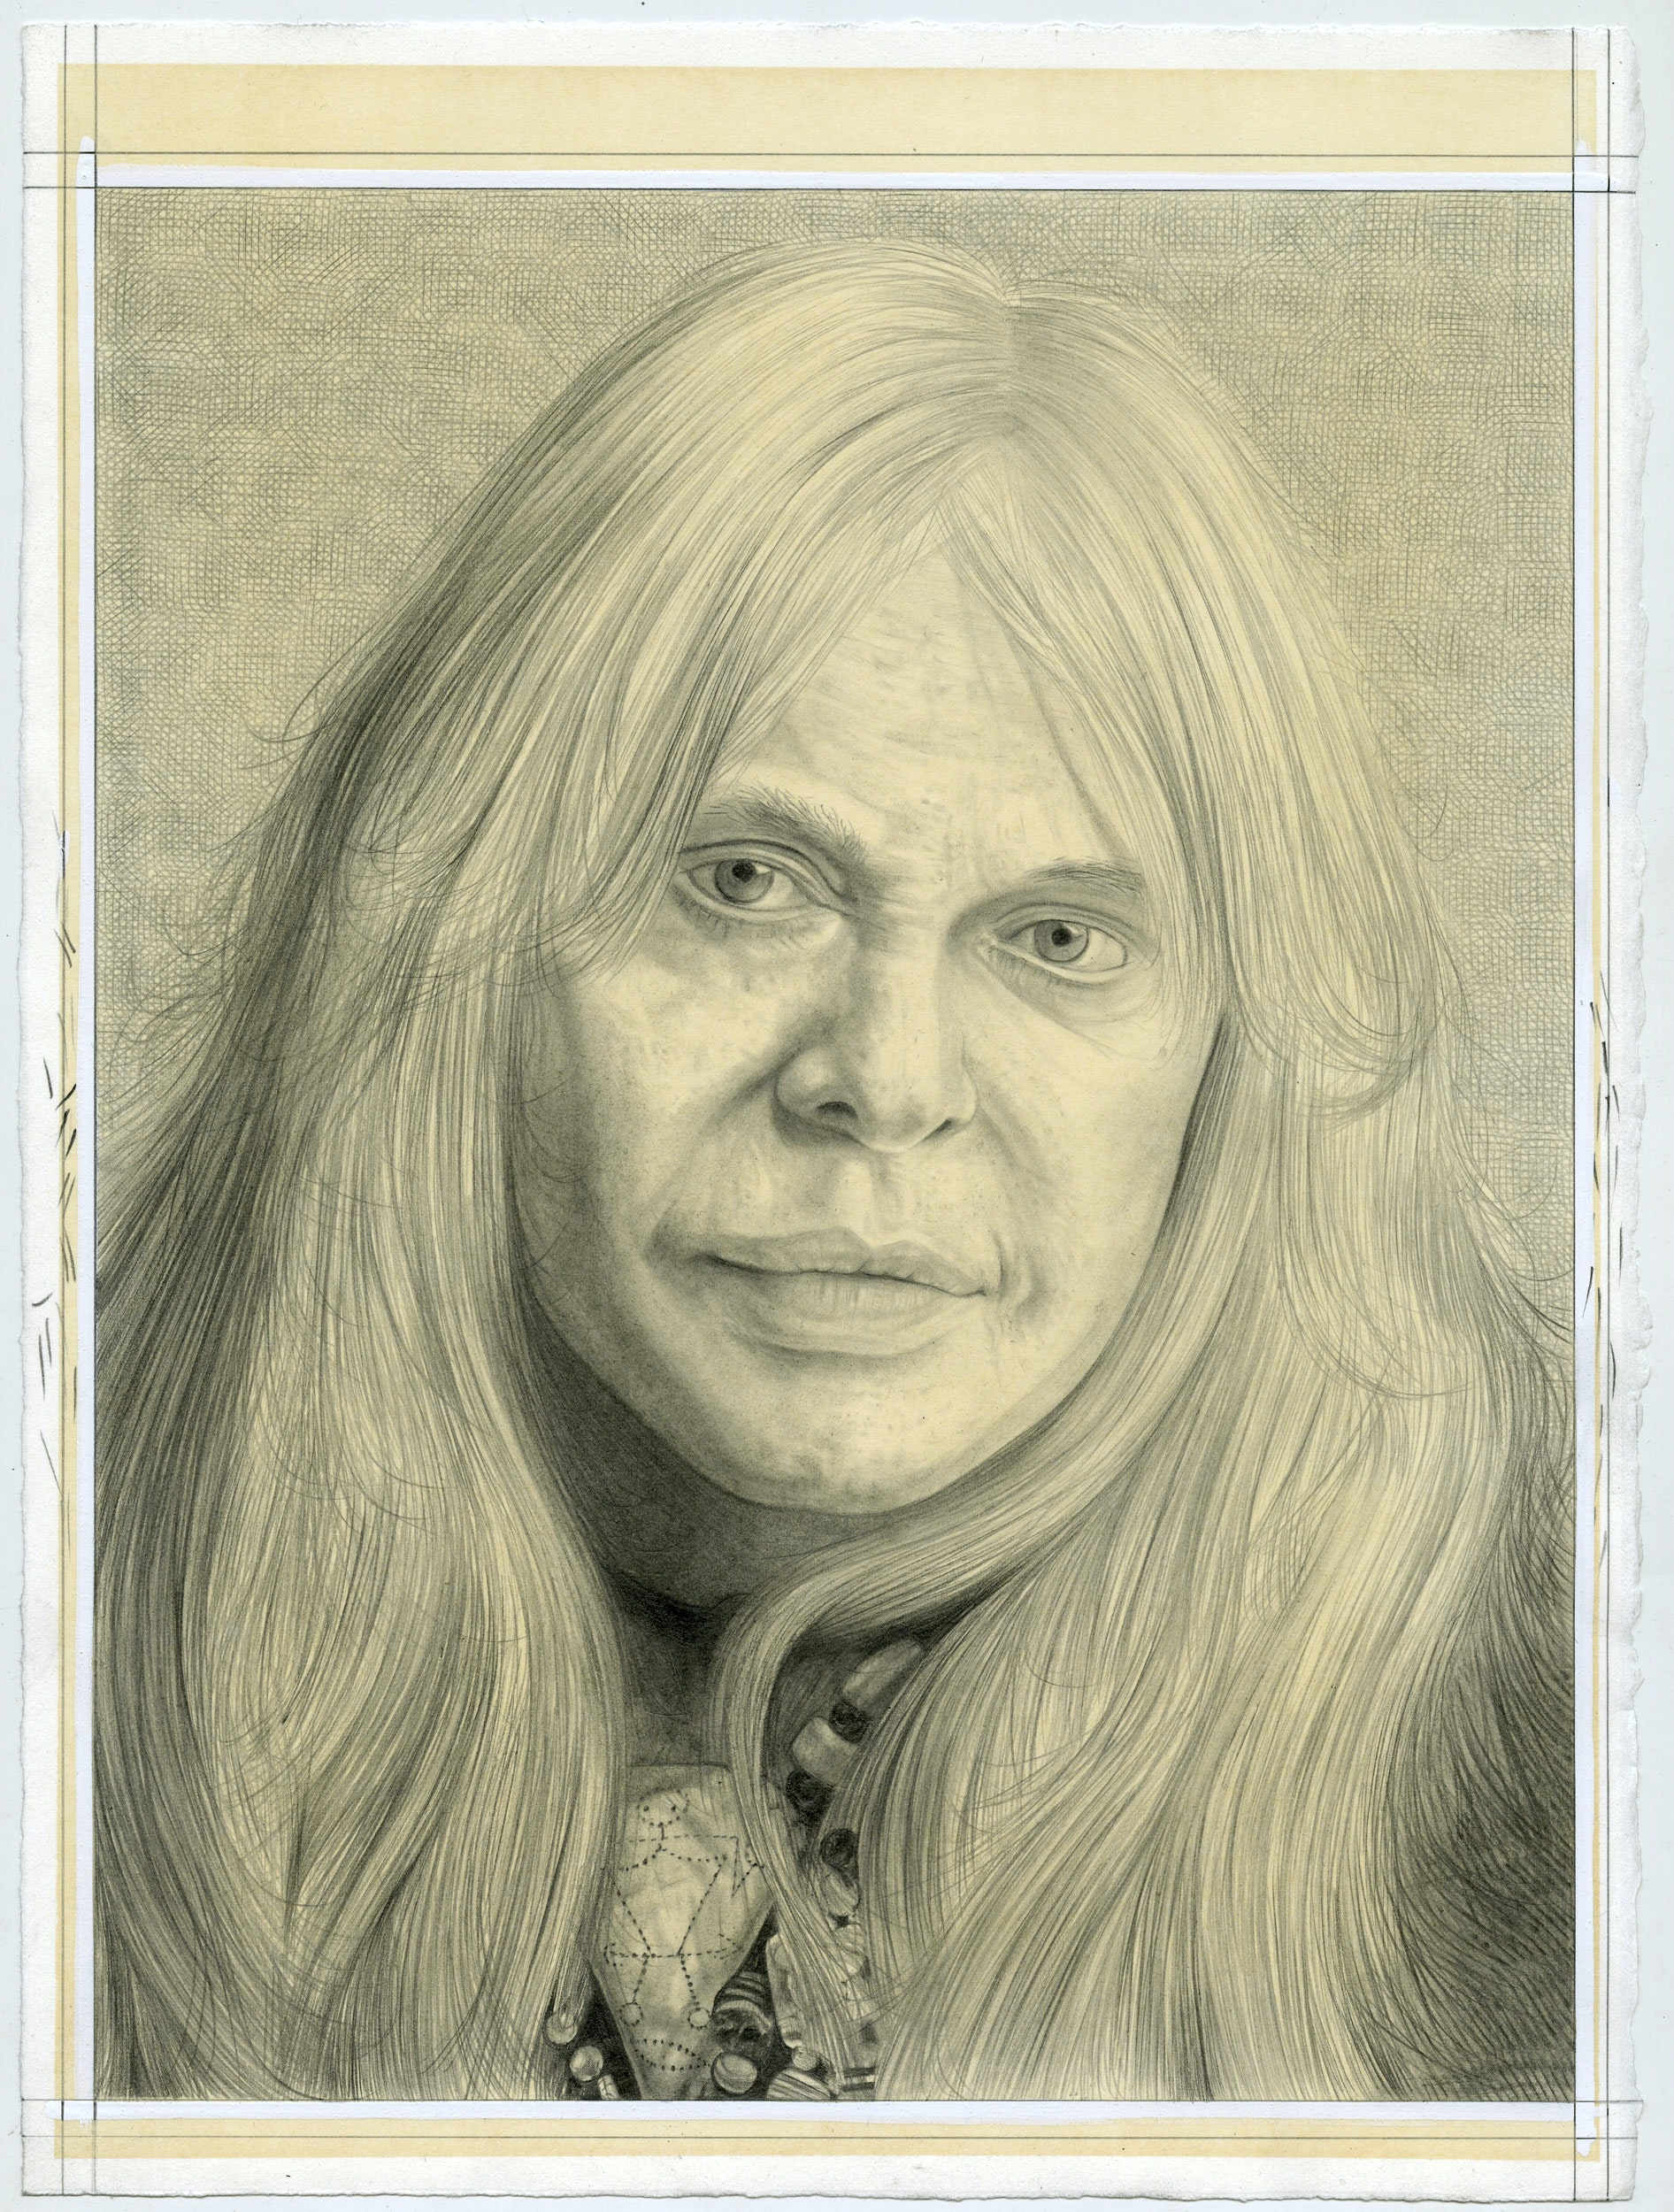 Portrait of Genesis Breyer P-Orridge, pencil on paper by Phong H. Bui.